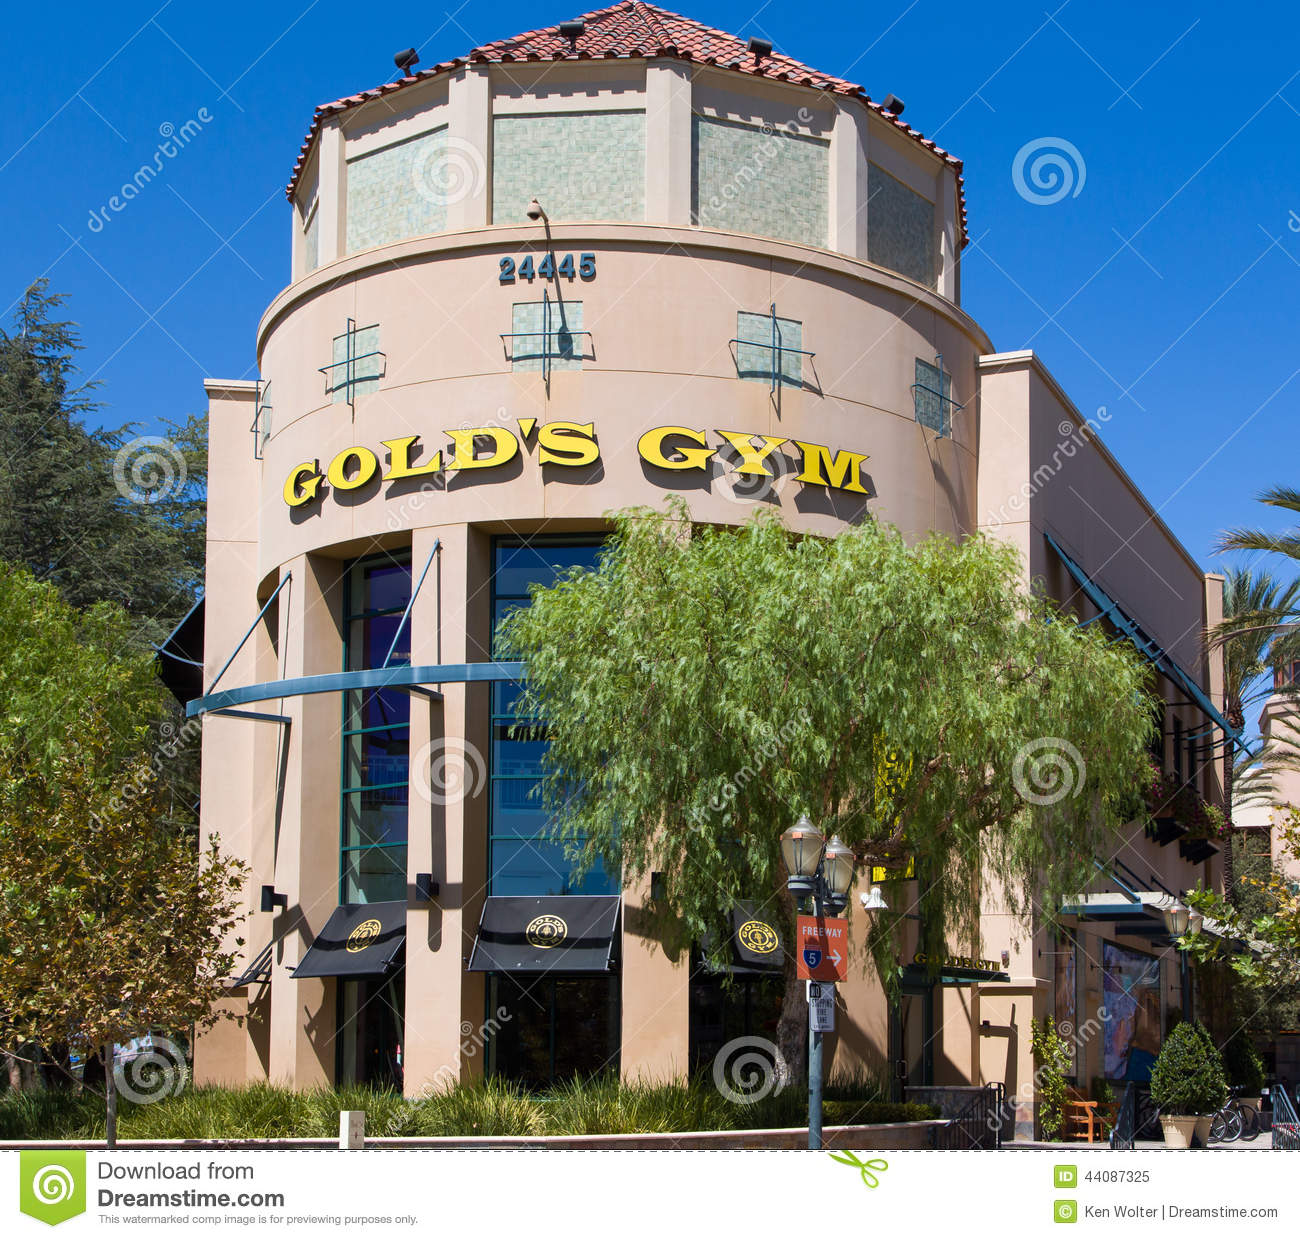 gold's gym exterior. editorial image. image of recreational - 44087325